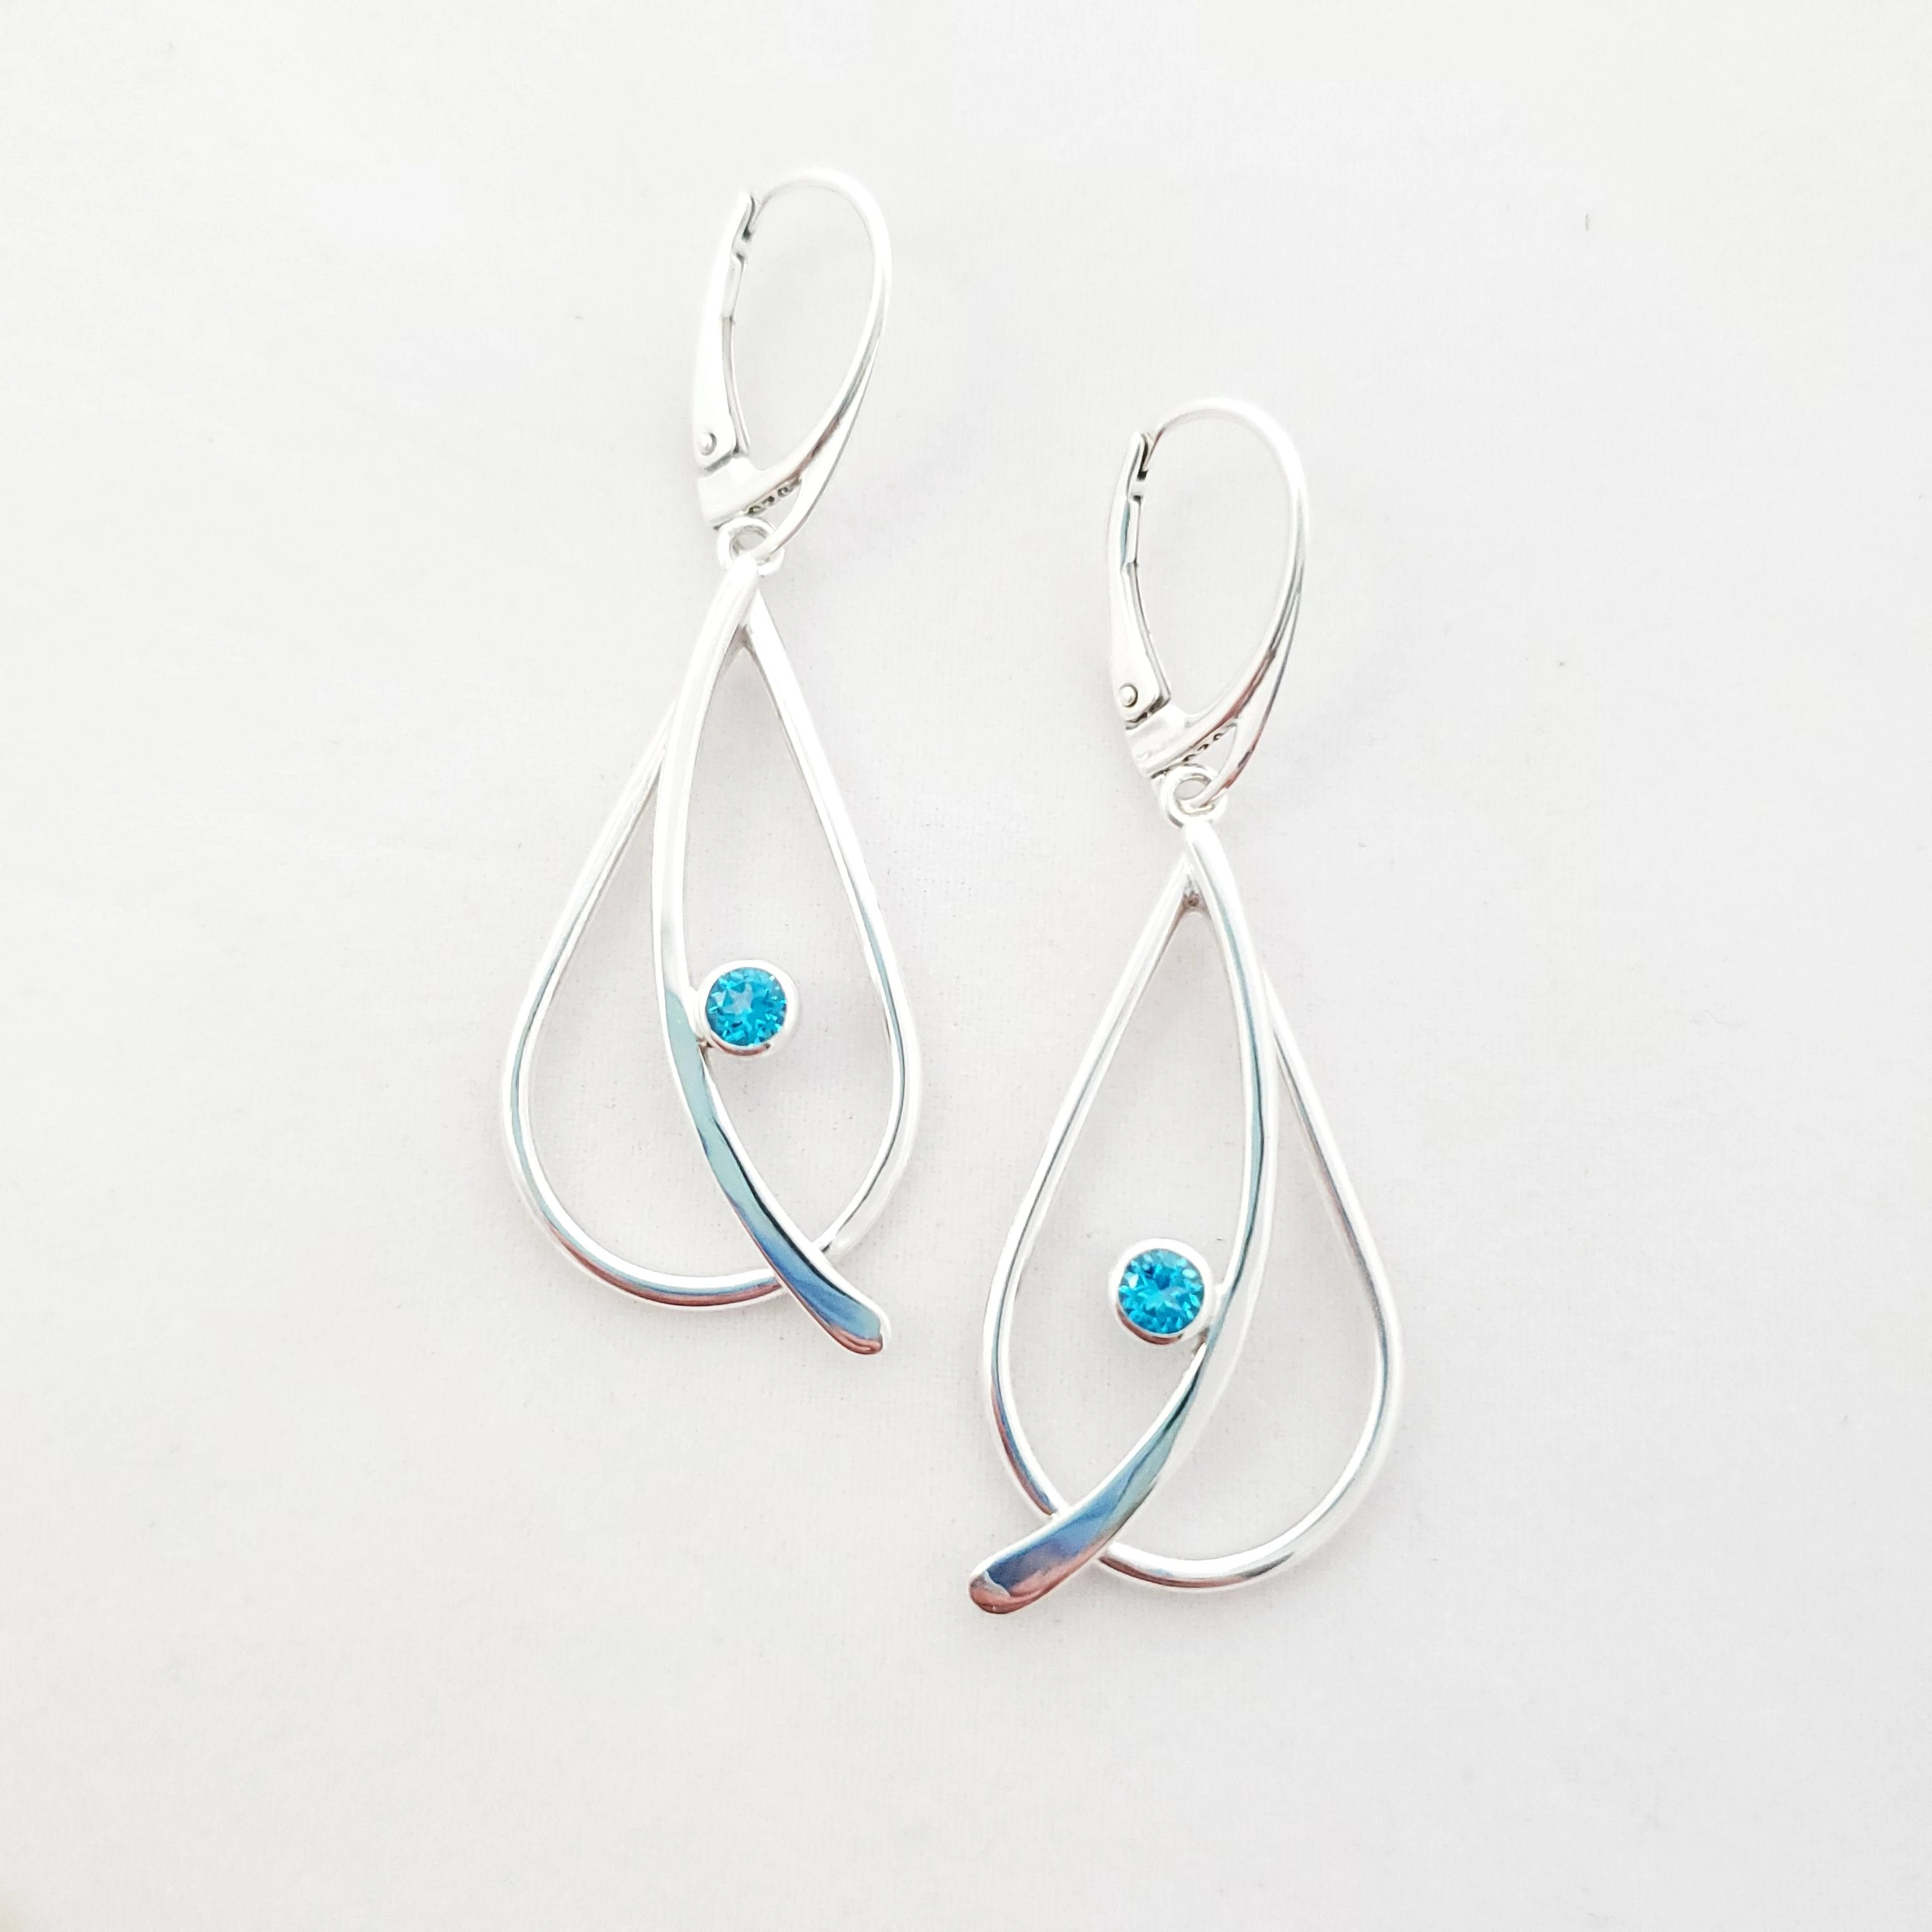 Sterling silver open design teardrop earrings with curved wire attached on top of the teardrop with a small faceted blue topaz bezel set in center. Lever back earring wires.